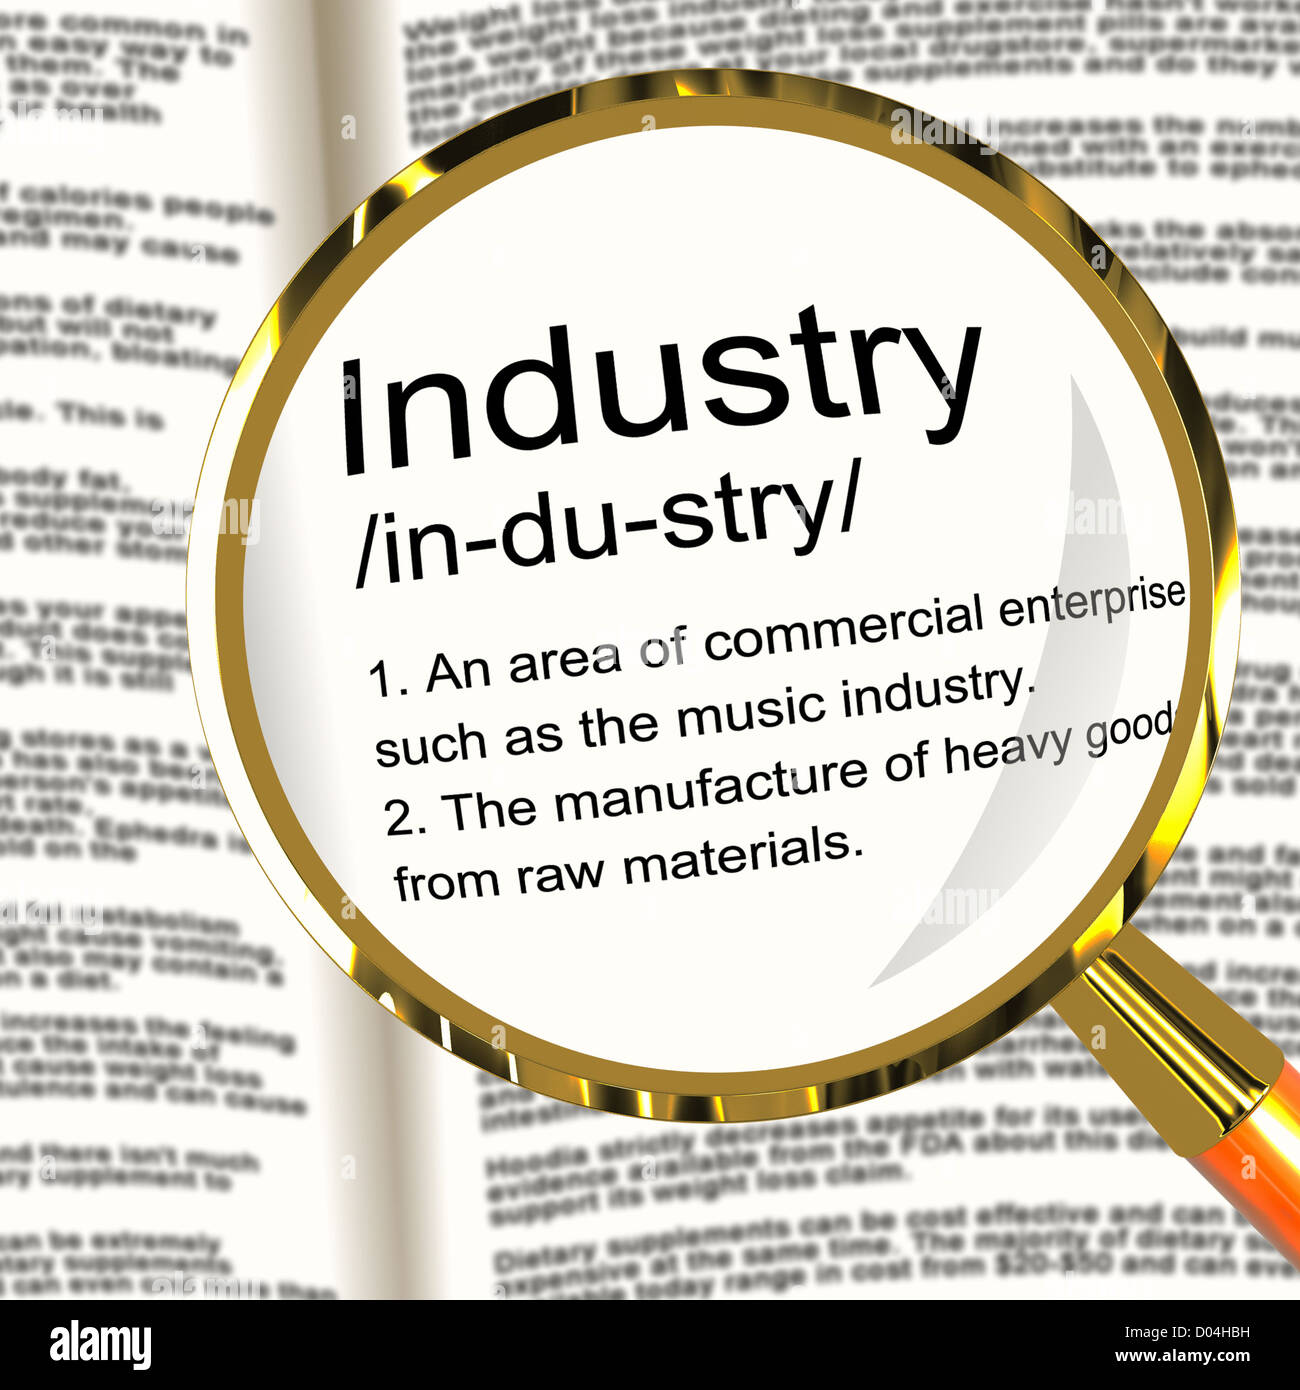 industry definition magnifier shows engineering construction or